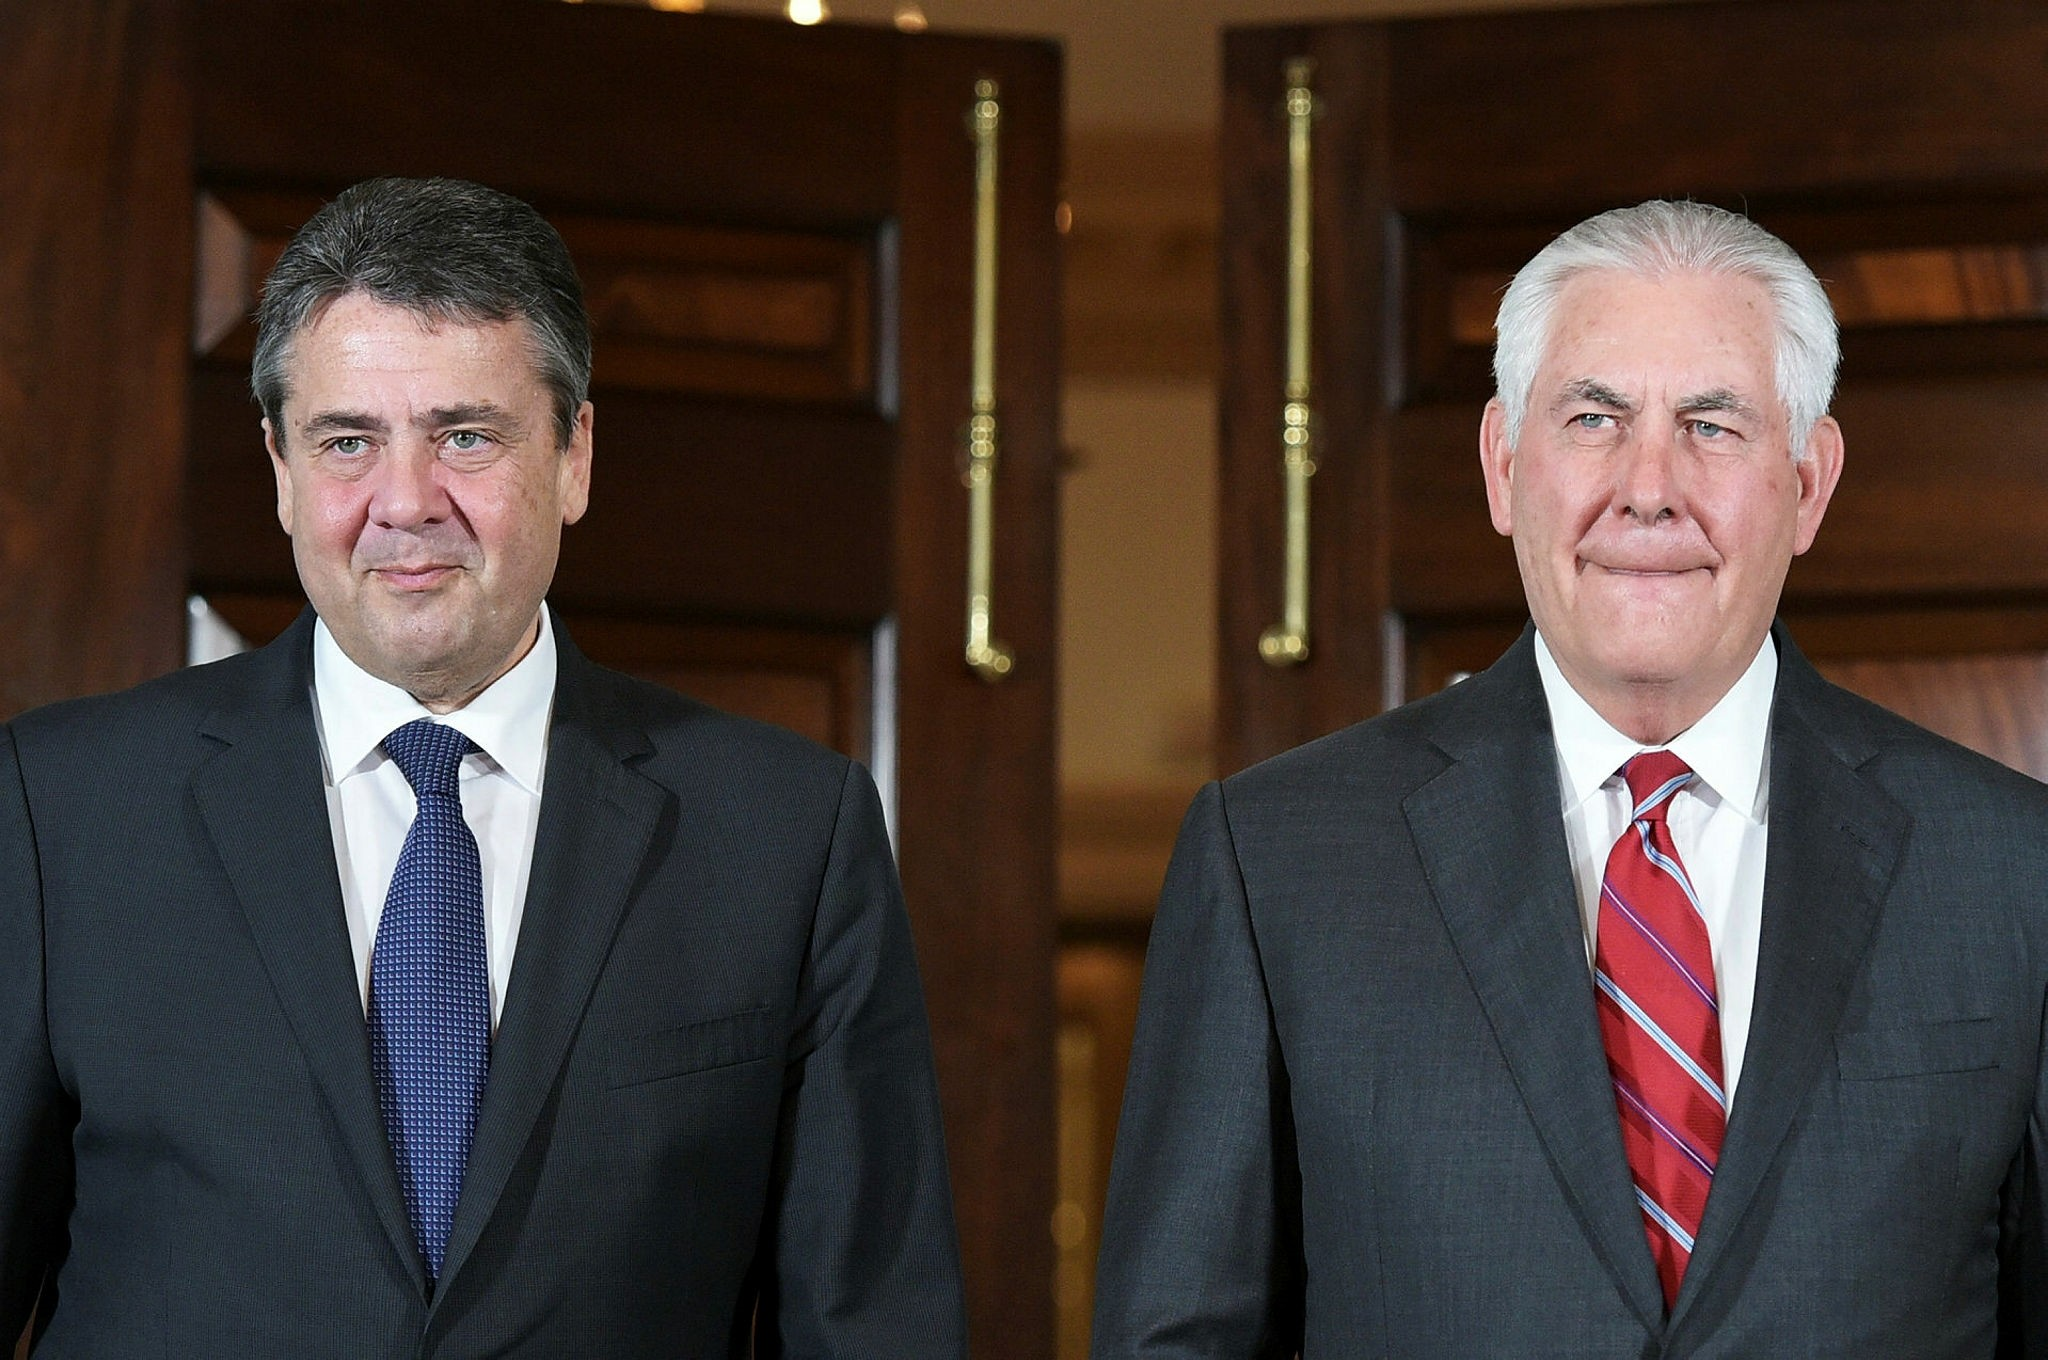 US Secretary of State Rex Tillerson (R) and Germany's Foreign Minister Sigmar Gabriel arrive to pose for photos ahead of a bilateral at the State Department in Washington, DC on November 30, 2017. (AFP Photo)